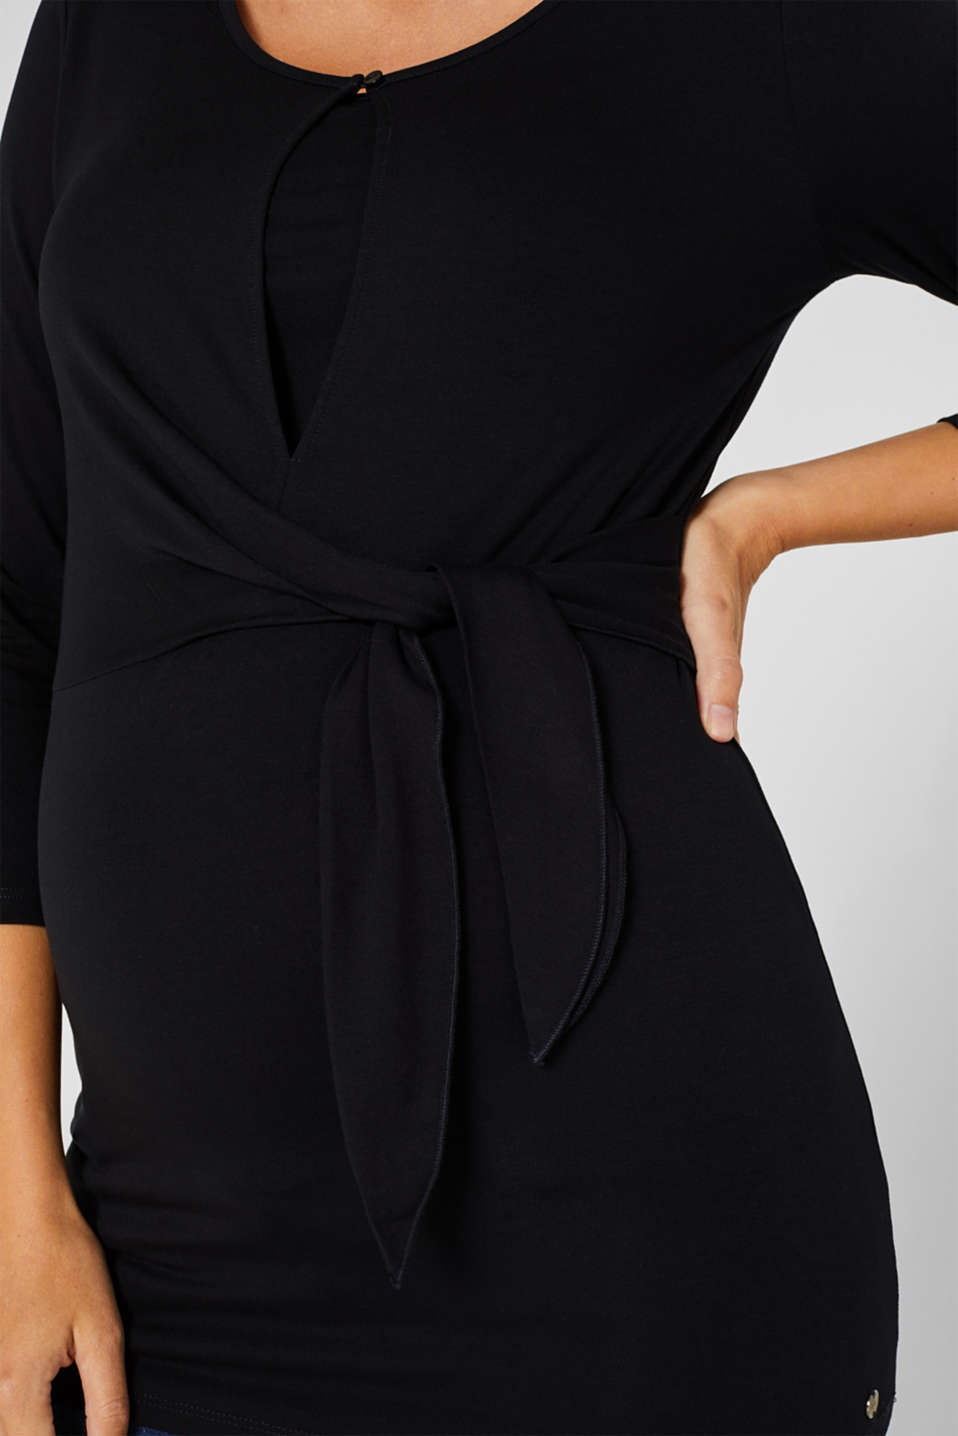 Nursing top with knot detail, LCBLACK, detail image number 2